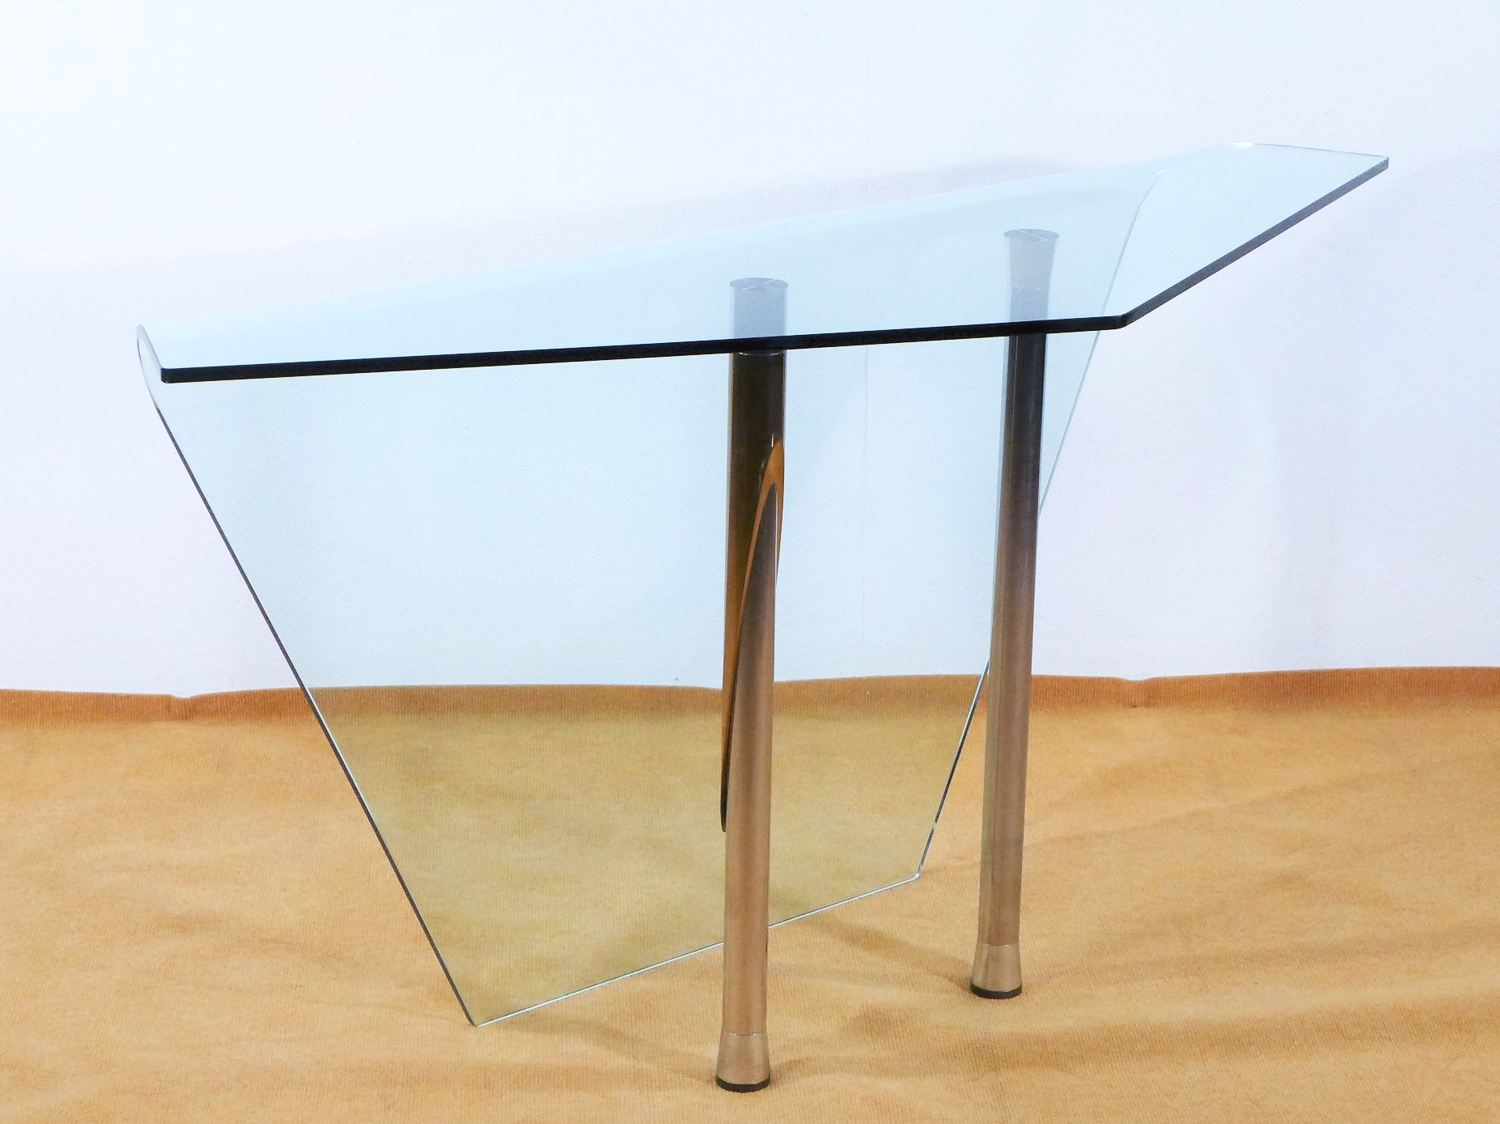 Tremendous Design Table Glass Buy Online At Hess Shops Download Free Architecture Designs Scobabritishbridgeorg